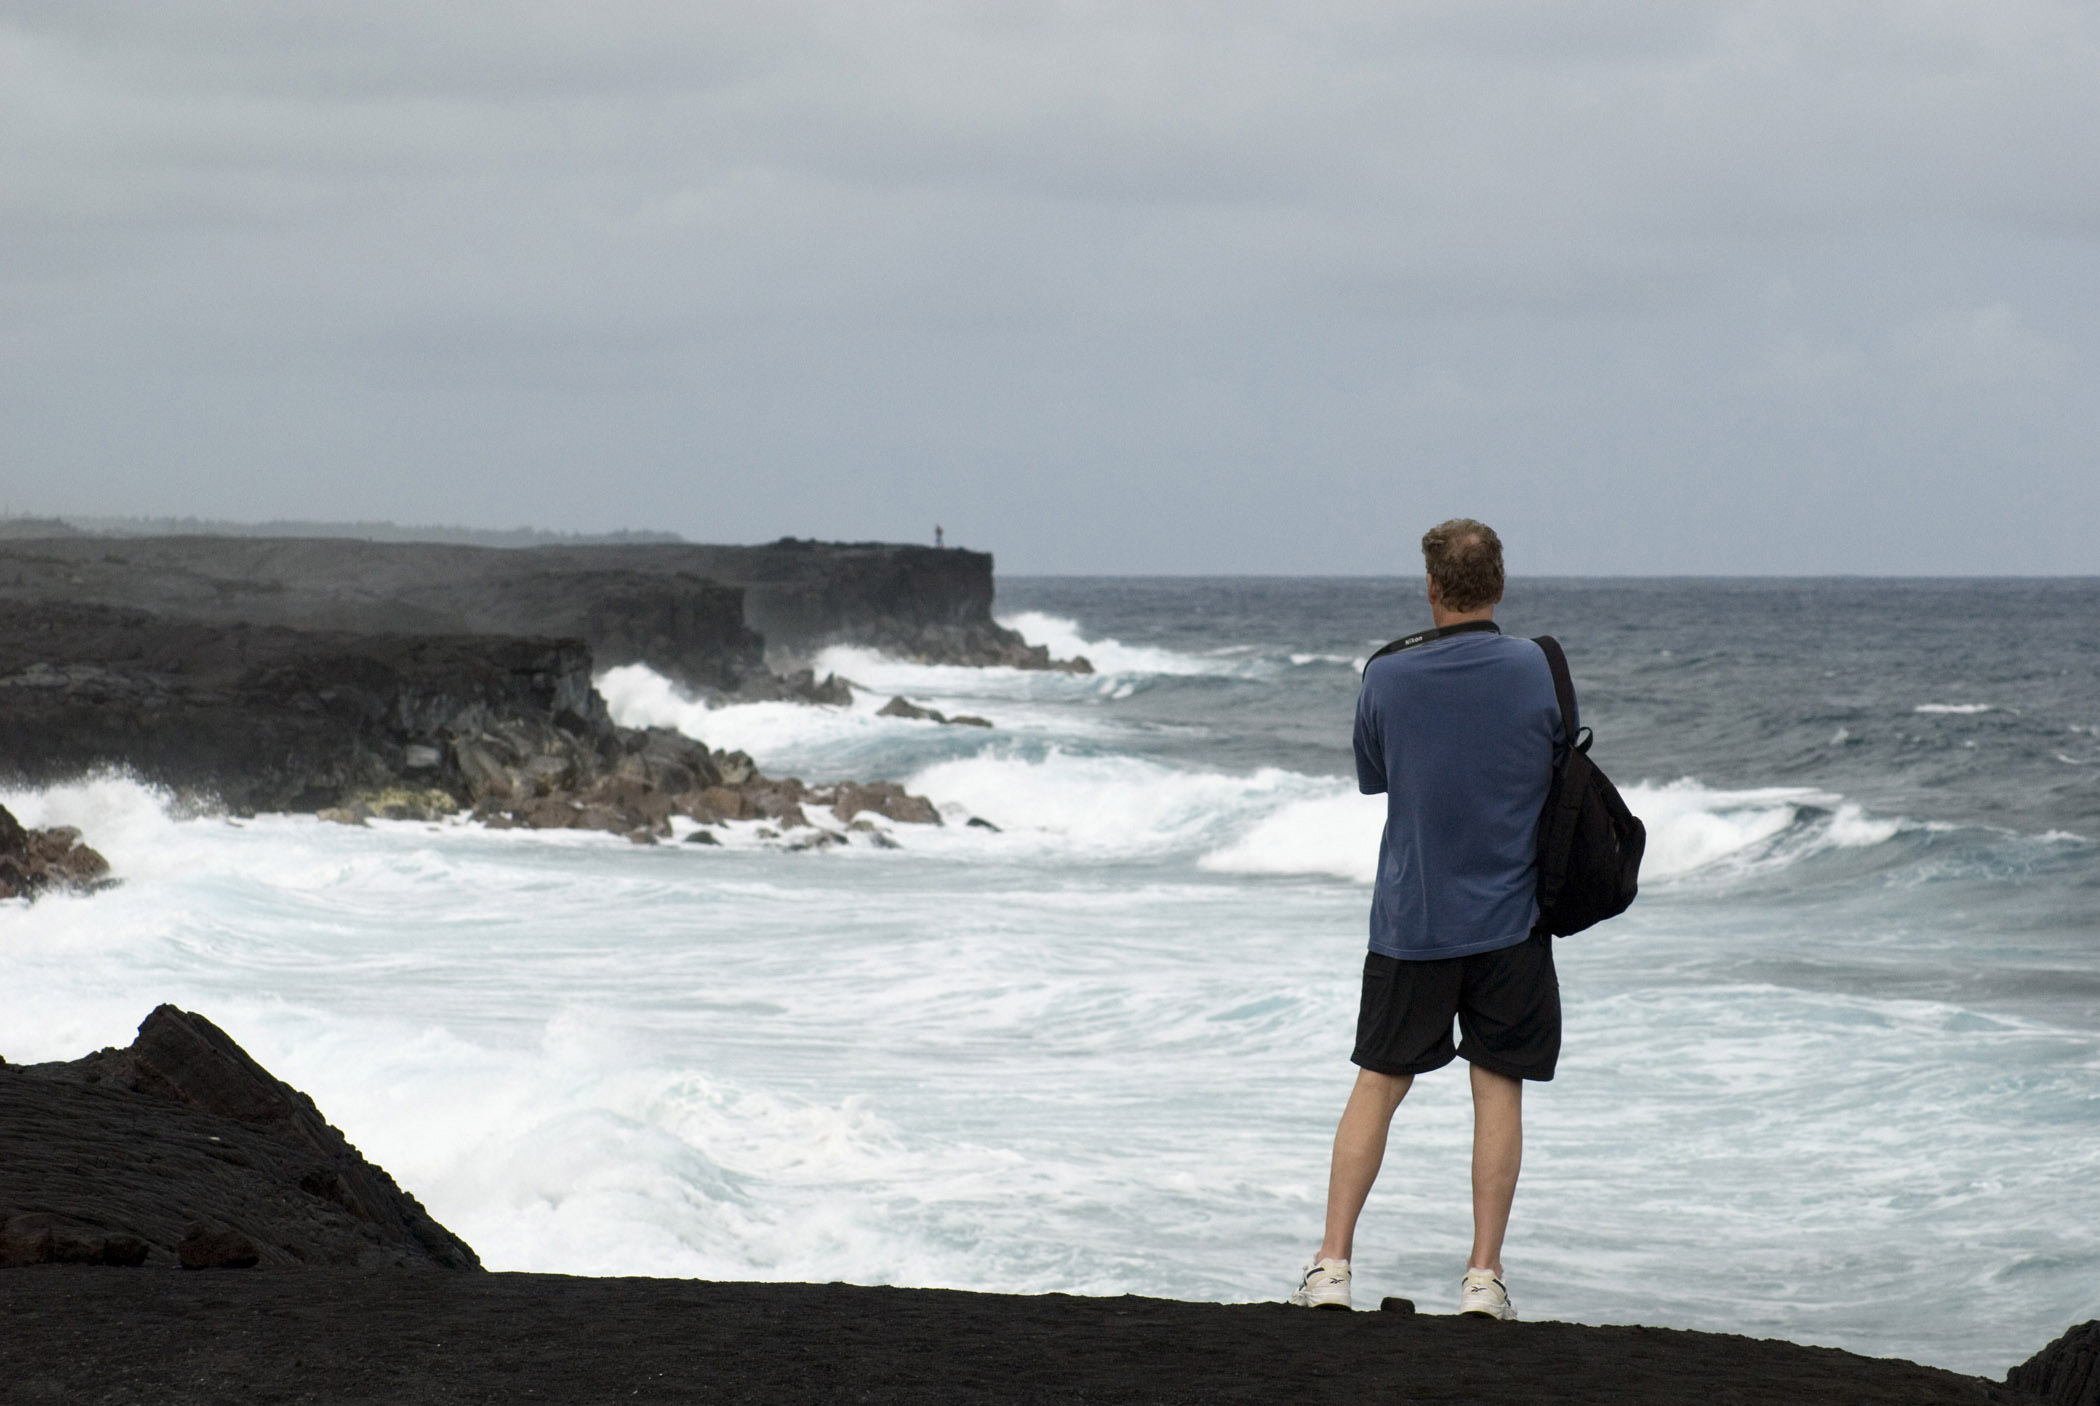 Tourist standing with his back to the camera on the black volcanic sand on Kalapana beach, Hawaii looking out over the ocean waves and rocks